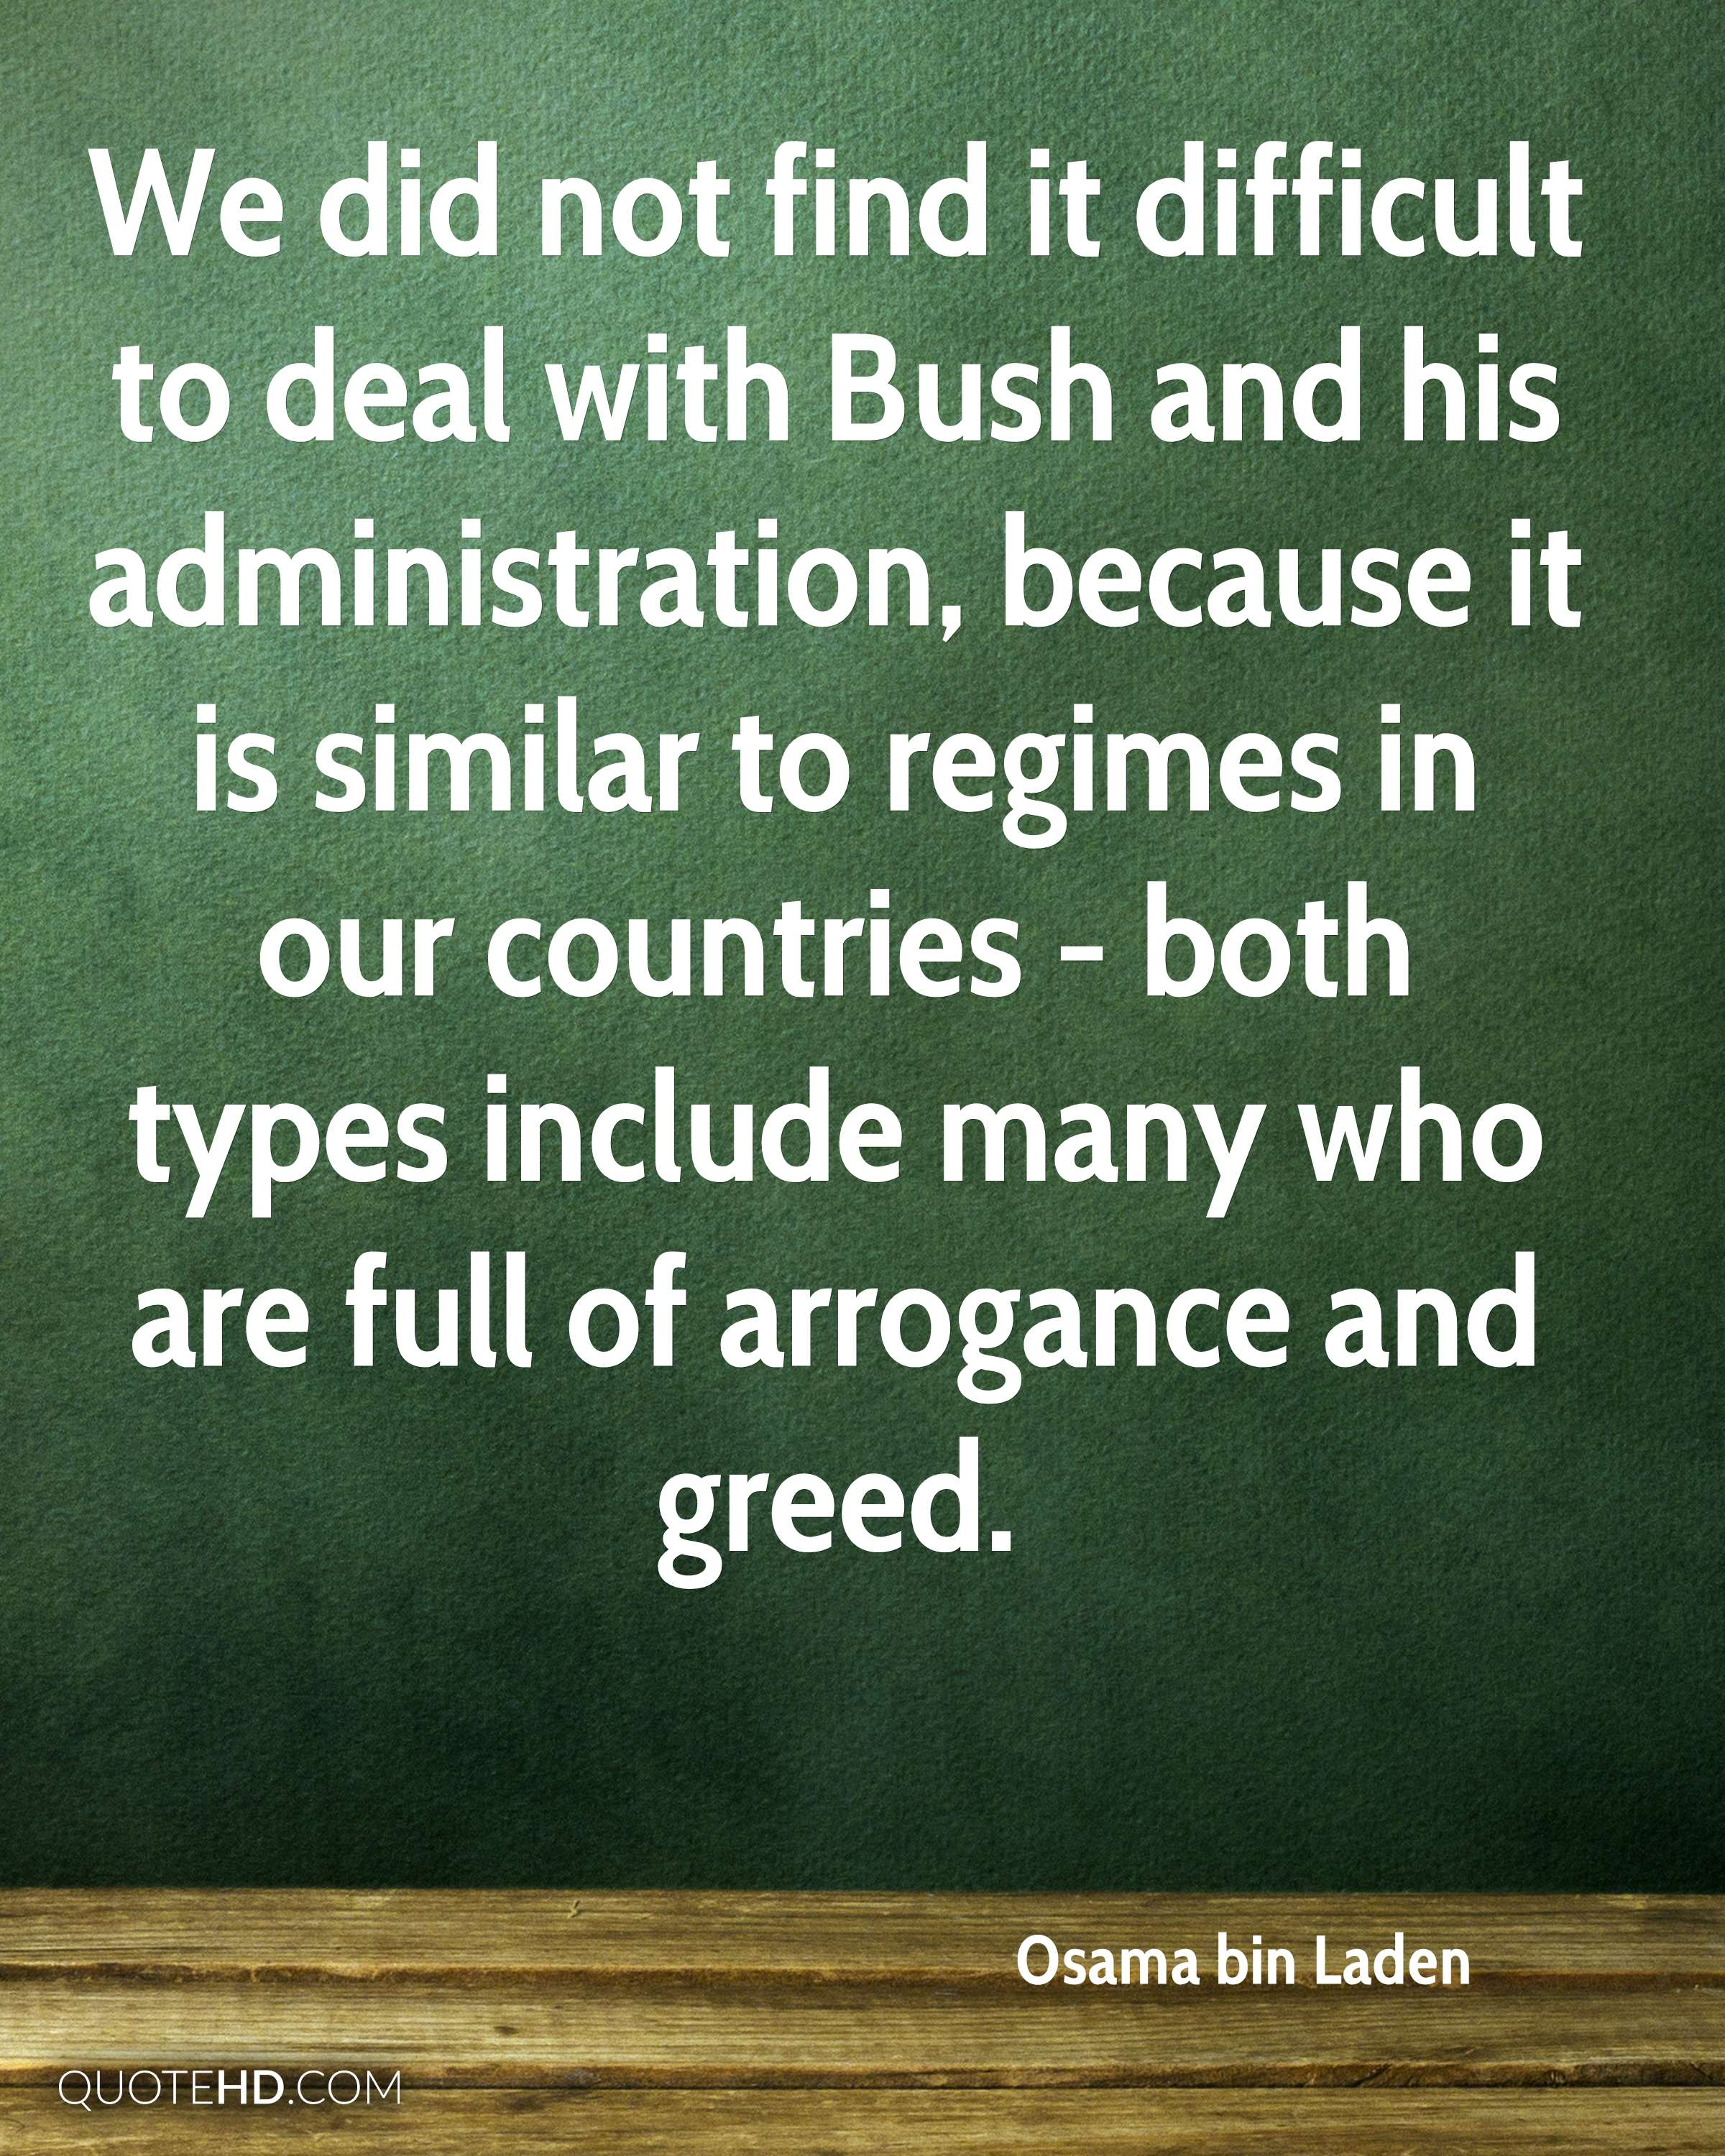 We did not find it difficult to deal with Bush and his administration, because it is similar to regimes in our countries - both types include many who are full of arrogance and greed.